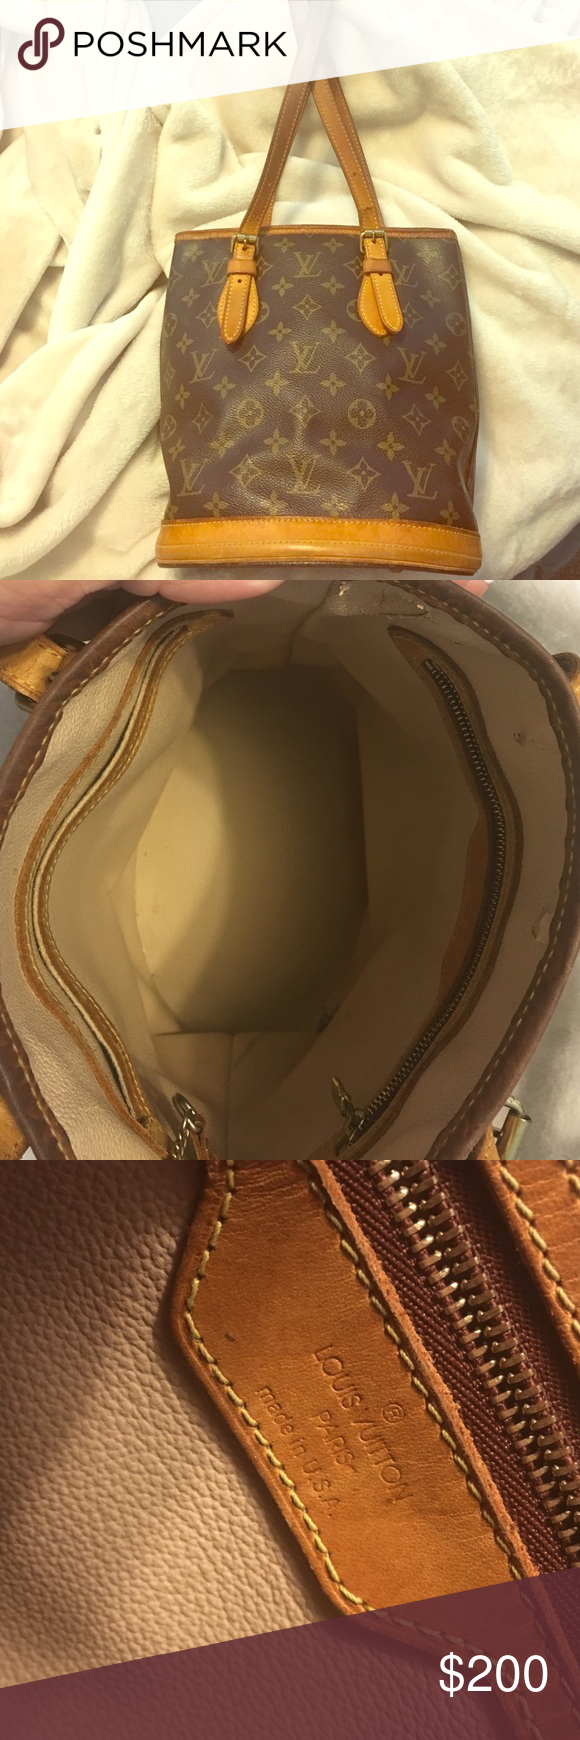 Louis Vuitton bucket bag Identification ID SD 1023 Louis Vuitton bag leather is naturally faded in areas from use. Wear on inside is pictured. No scratches or wear on logo leather. Beautiful bag, just upgrading. Louis Vuitton Bags